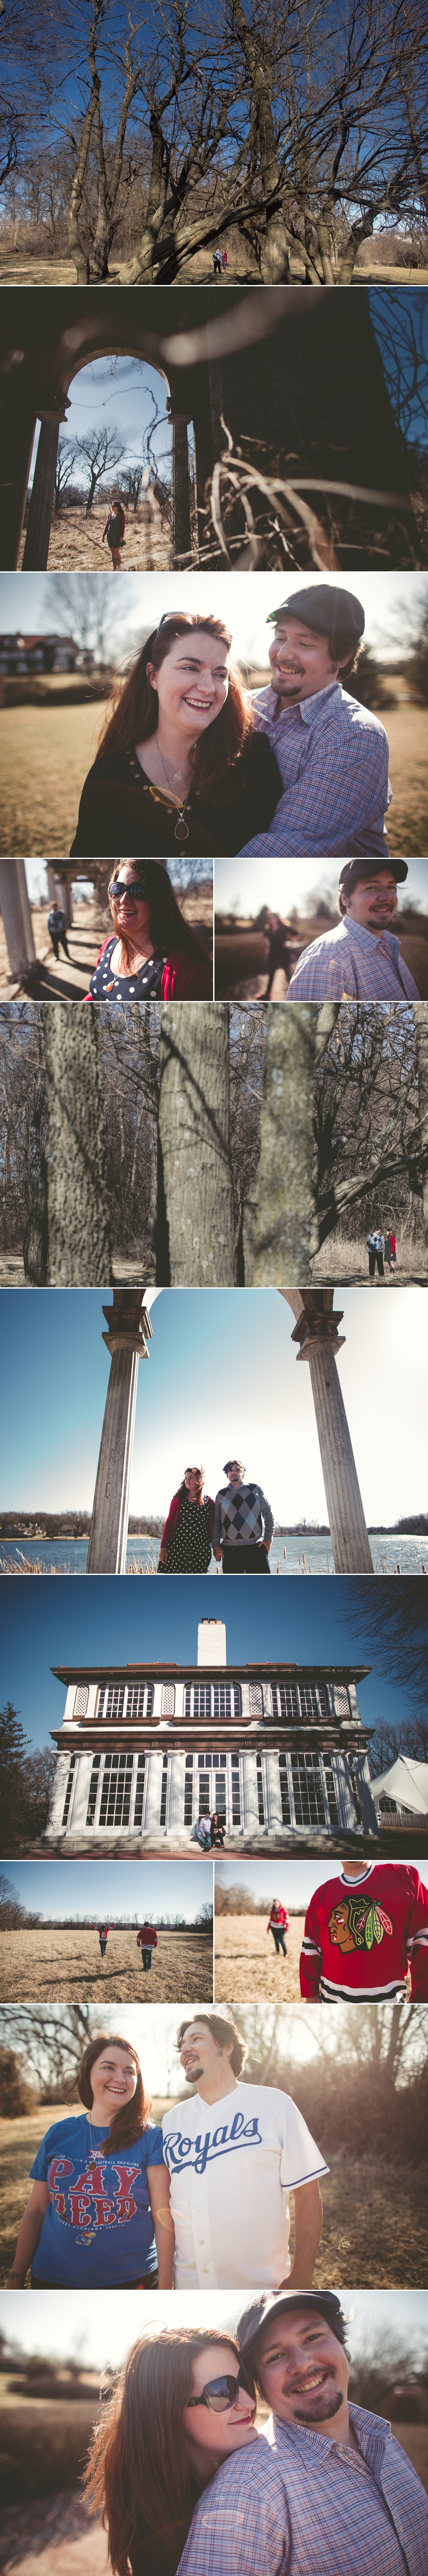 jason_domingues_photography_best_kansas_city_wedding_photographer_engagement_session_longview_mansion_lake_